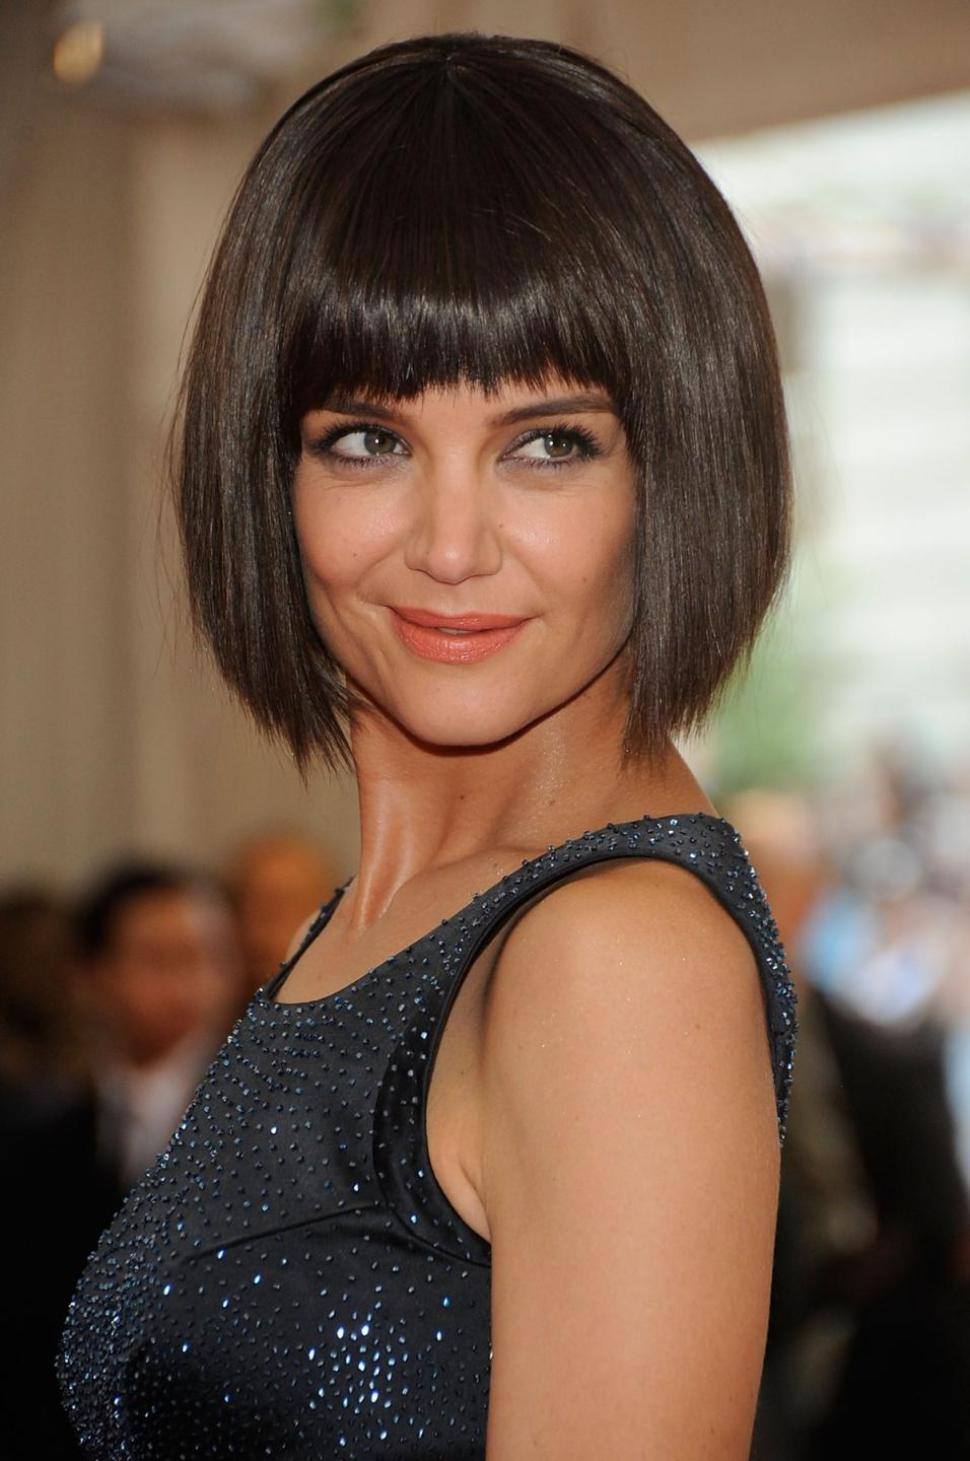 katie holmes bob makes another appearance at gala - dBTechno